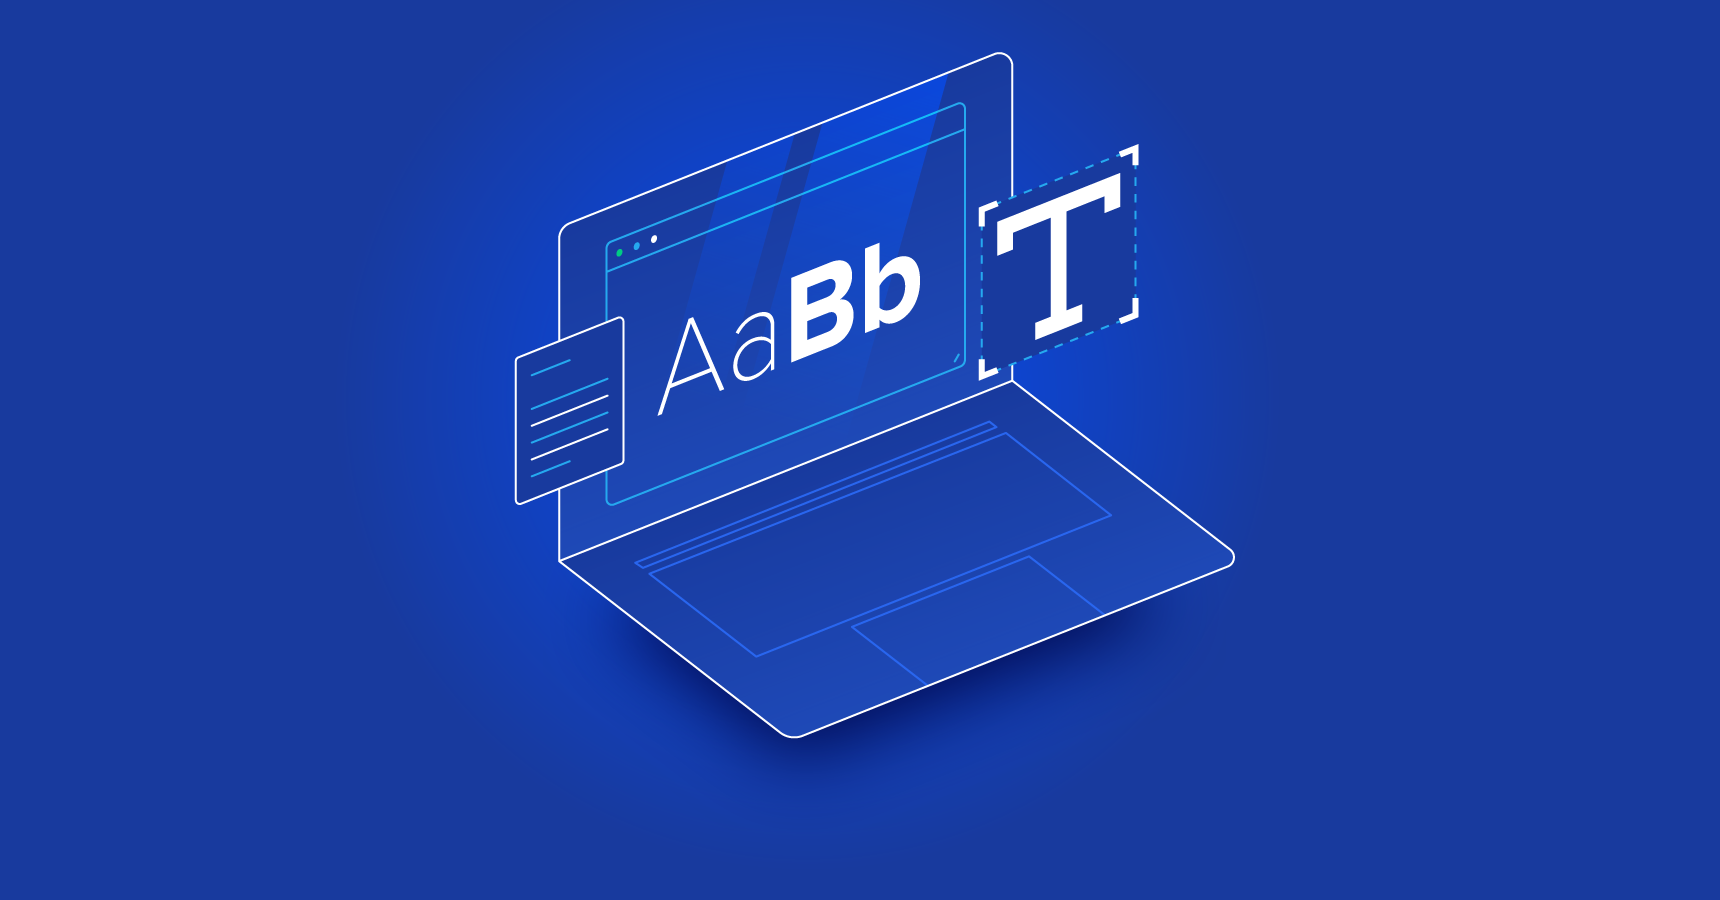 Typeface Styles for Web and Print Design | Toptal